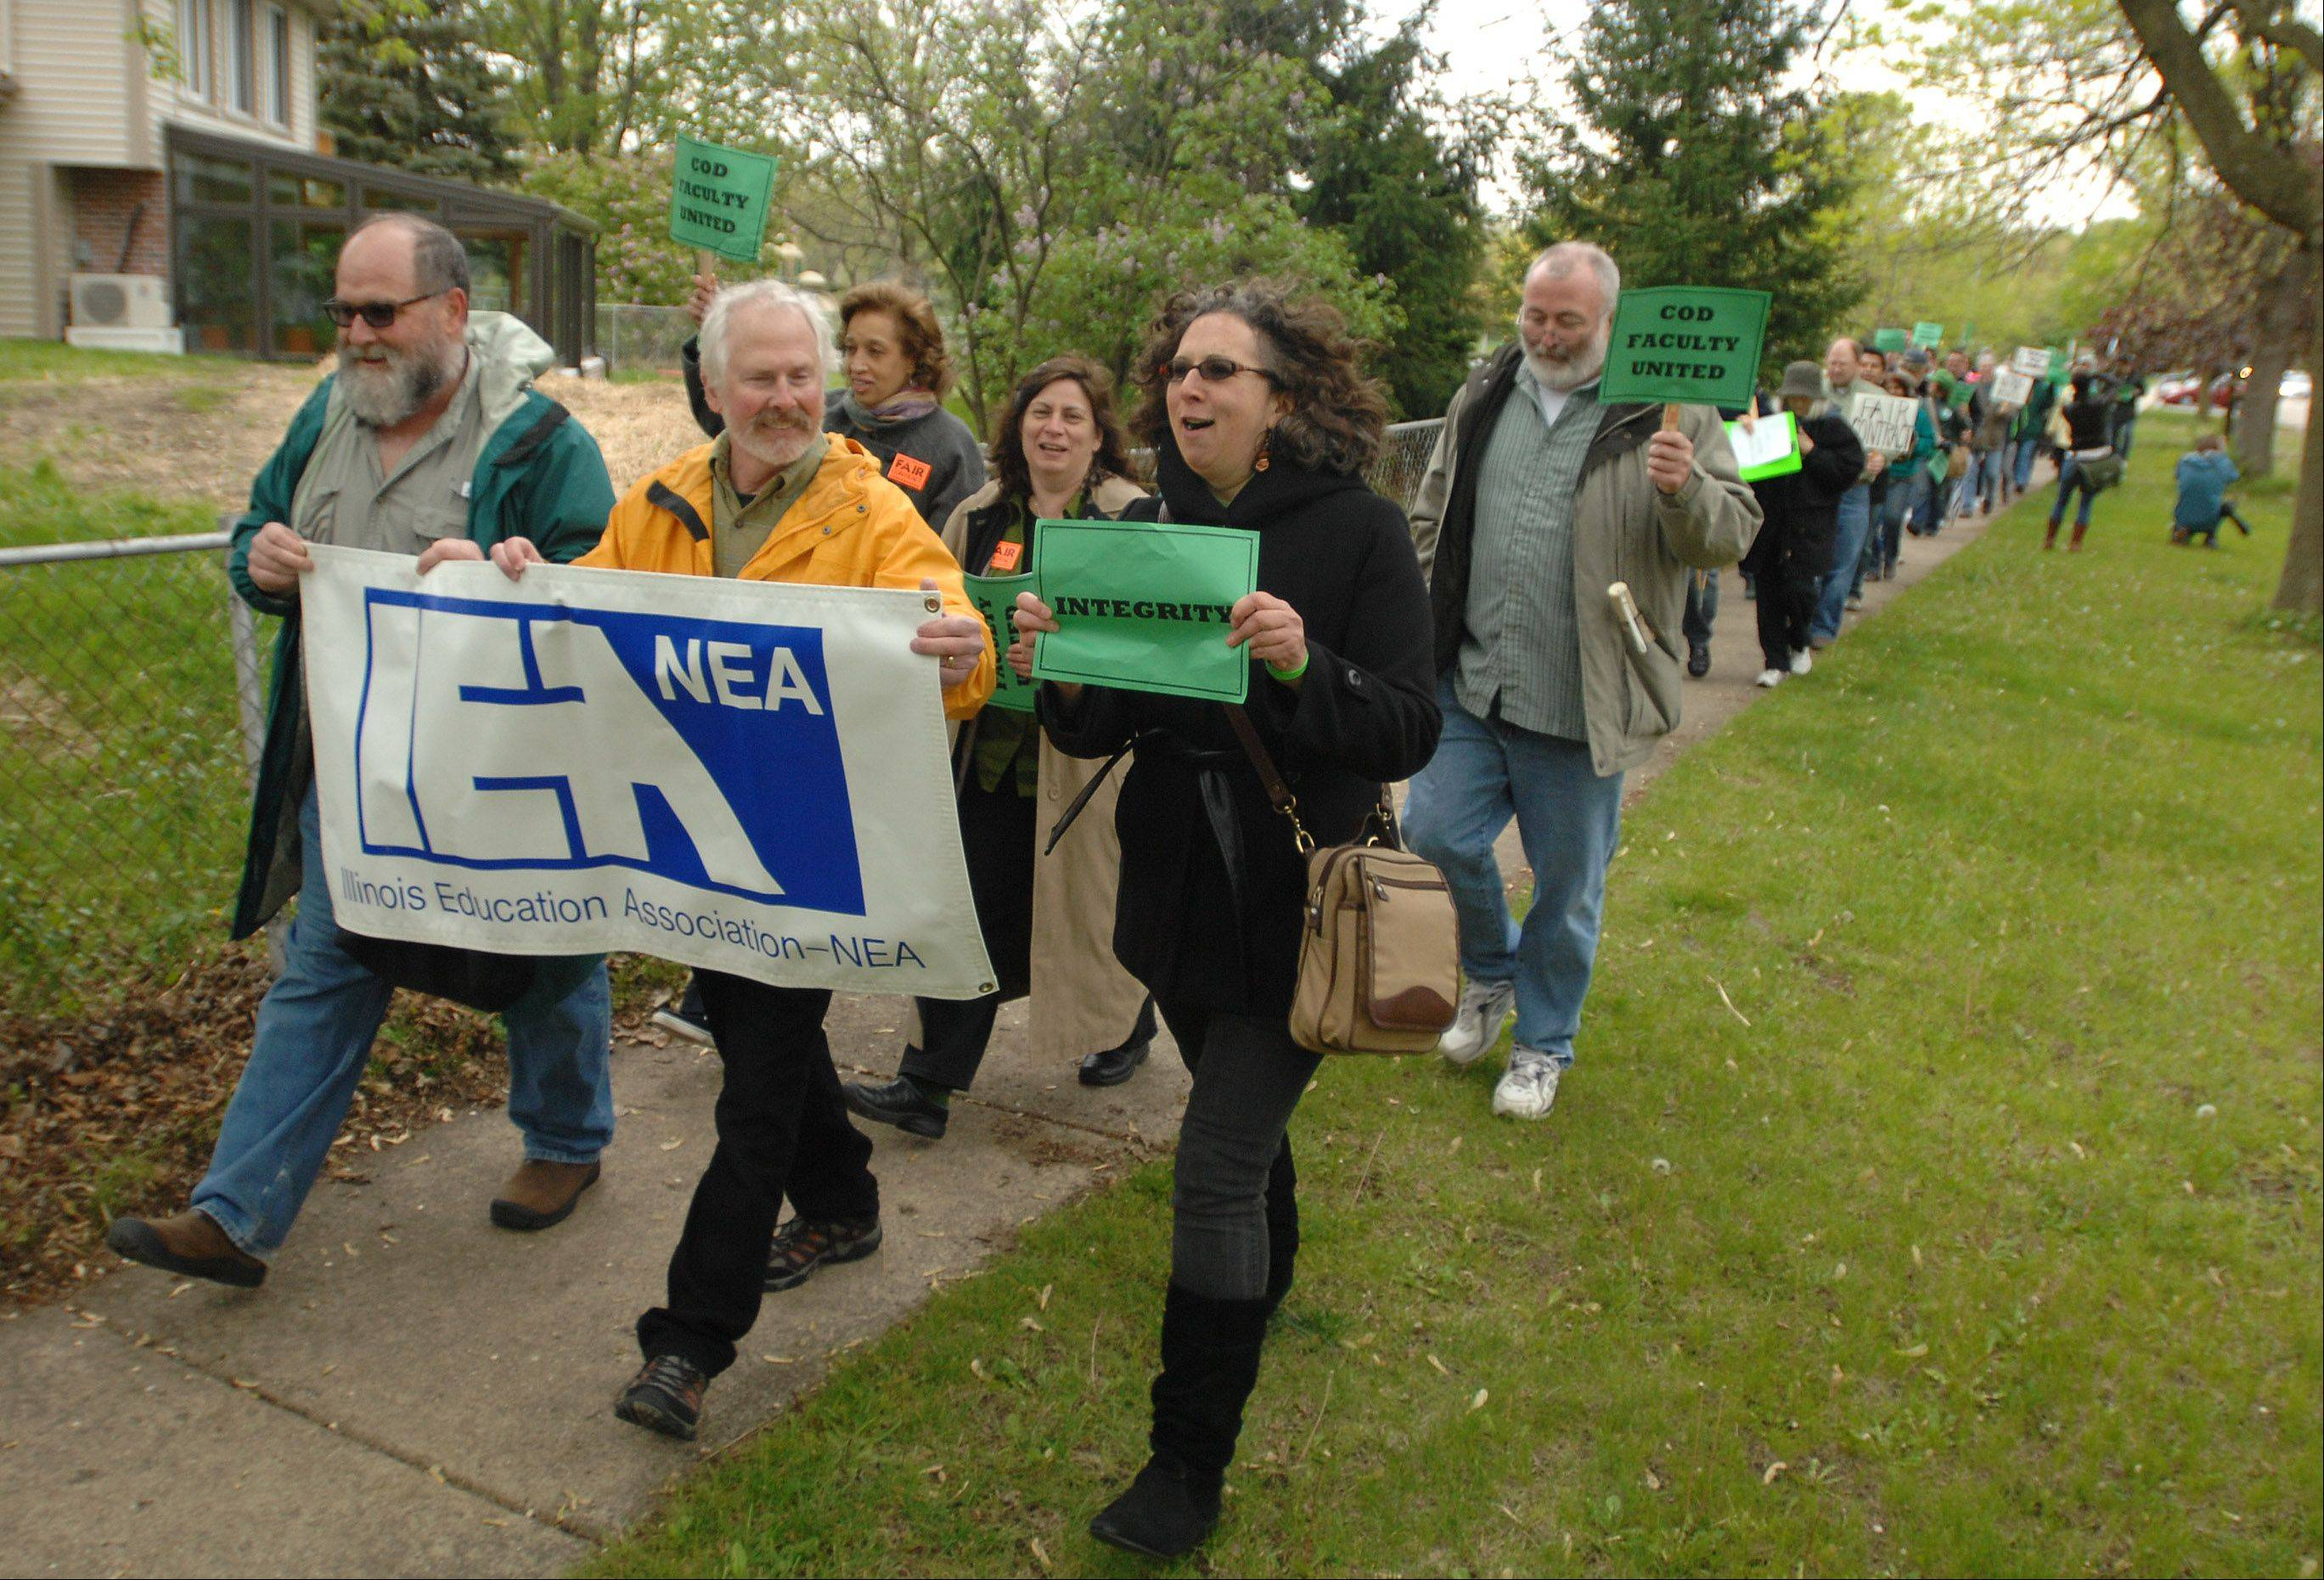 Members of the College of DuPage Faculty Association marched down Lambert Road in Glen Ellyn last month to call attention to stalled contract negotiations. Union officials announced early Saturday they reached a tentative agreement with the college's administration. To take effect, the deal must be approved by the union's membership and the college's board of trustees.